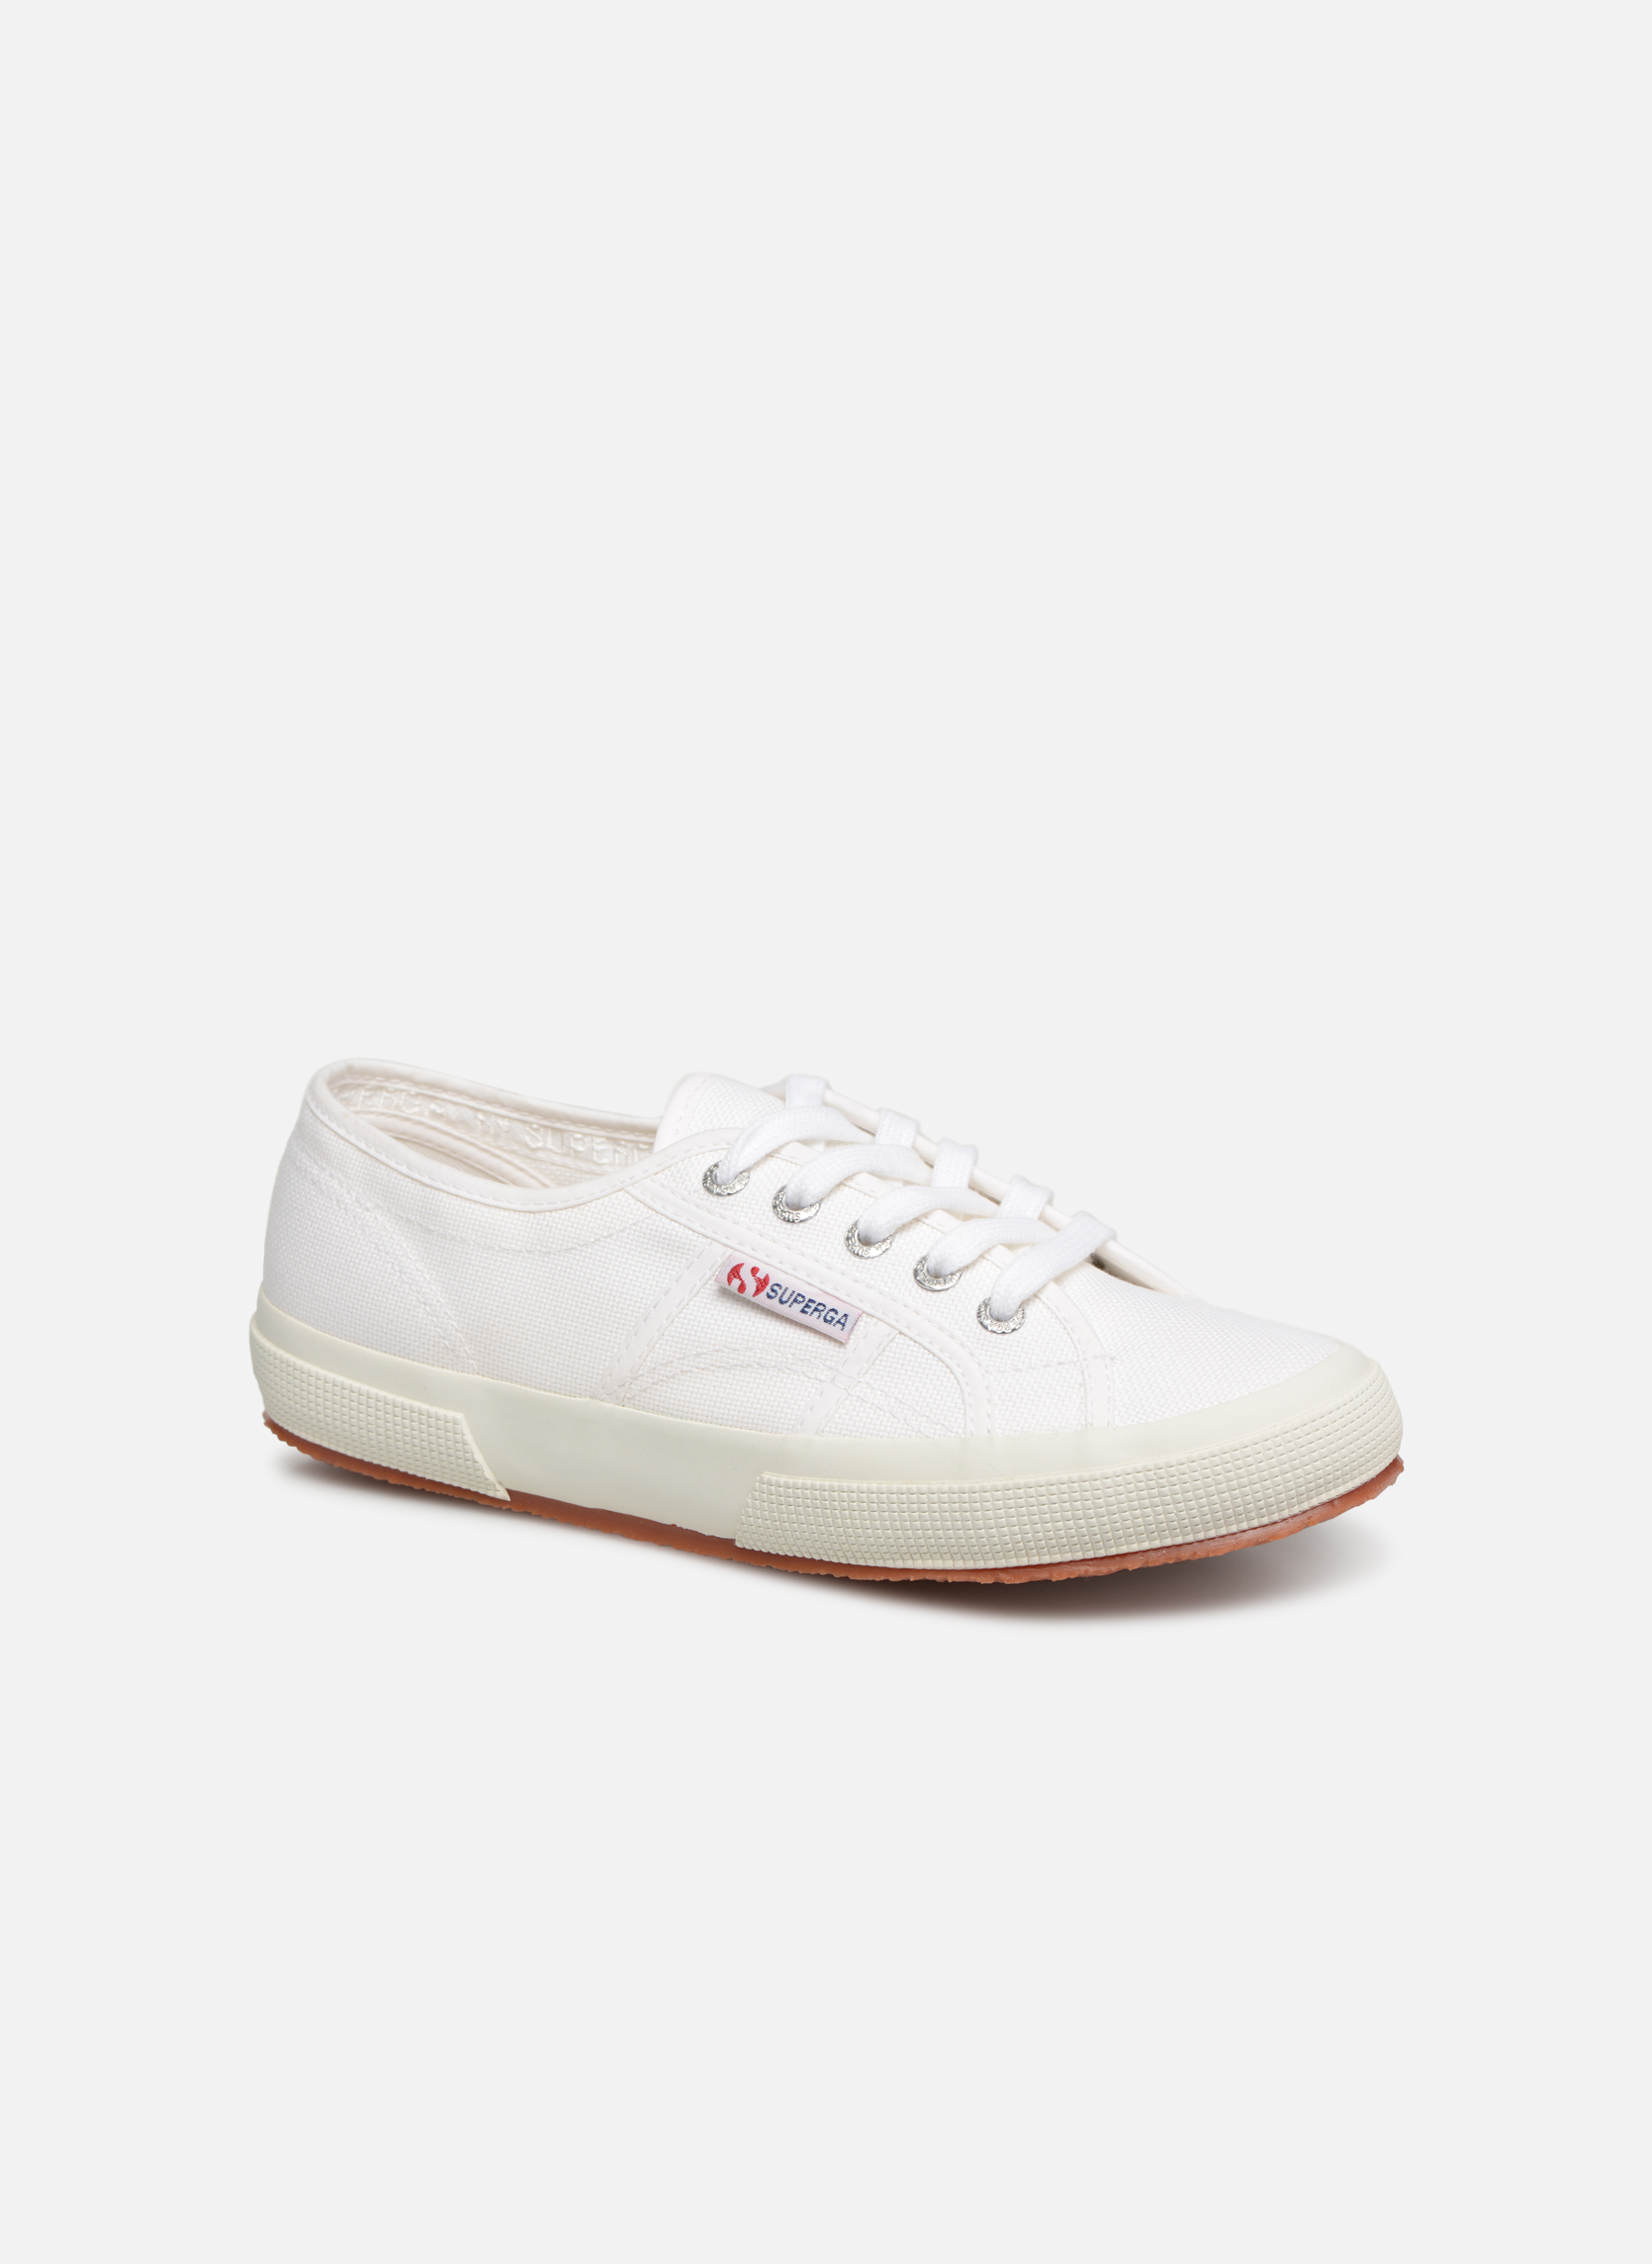 2750 Cotu W by Superga